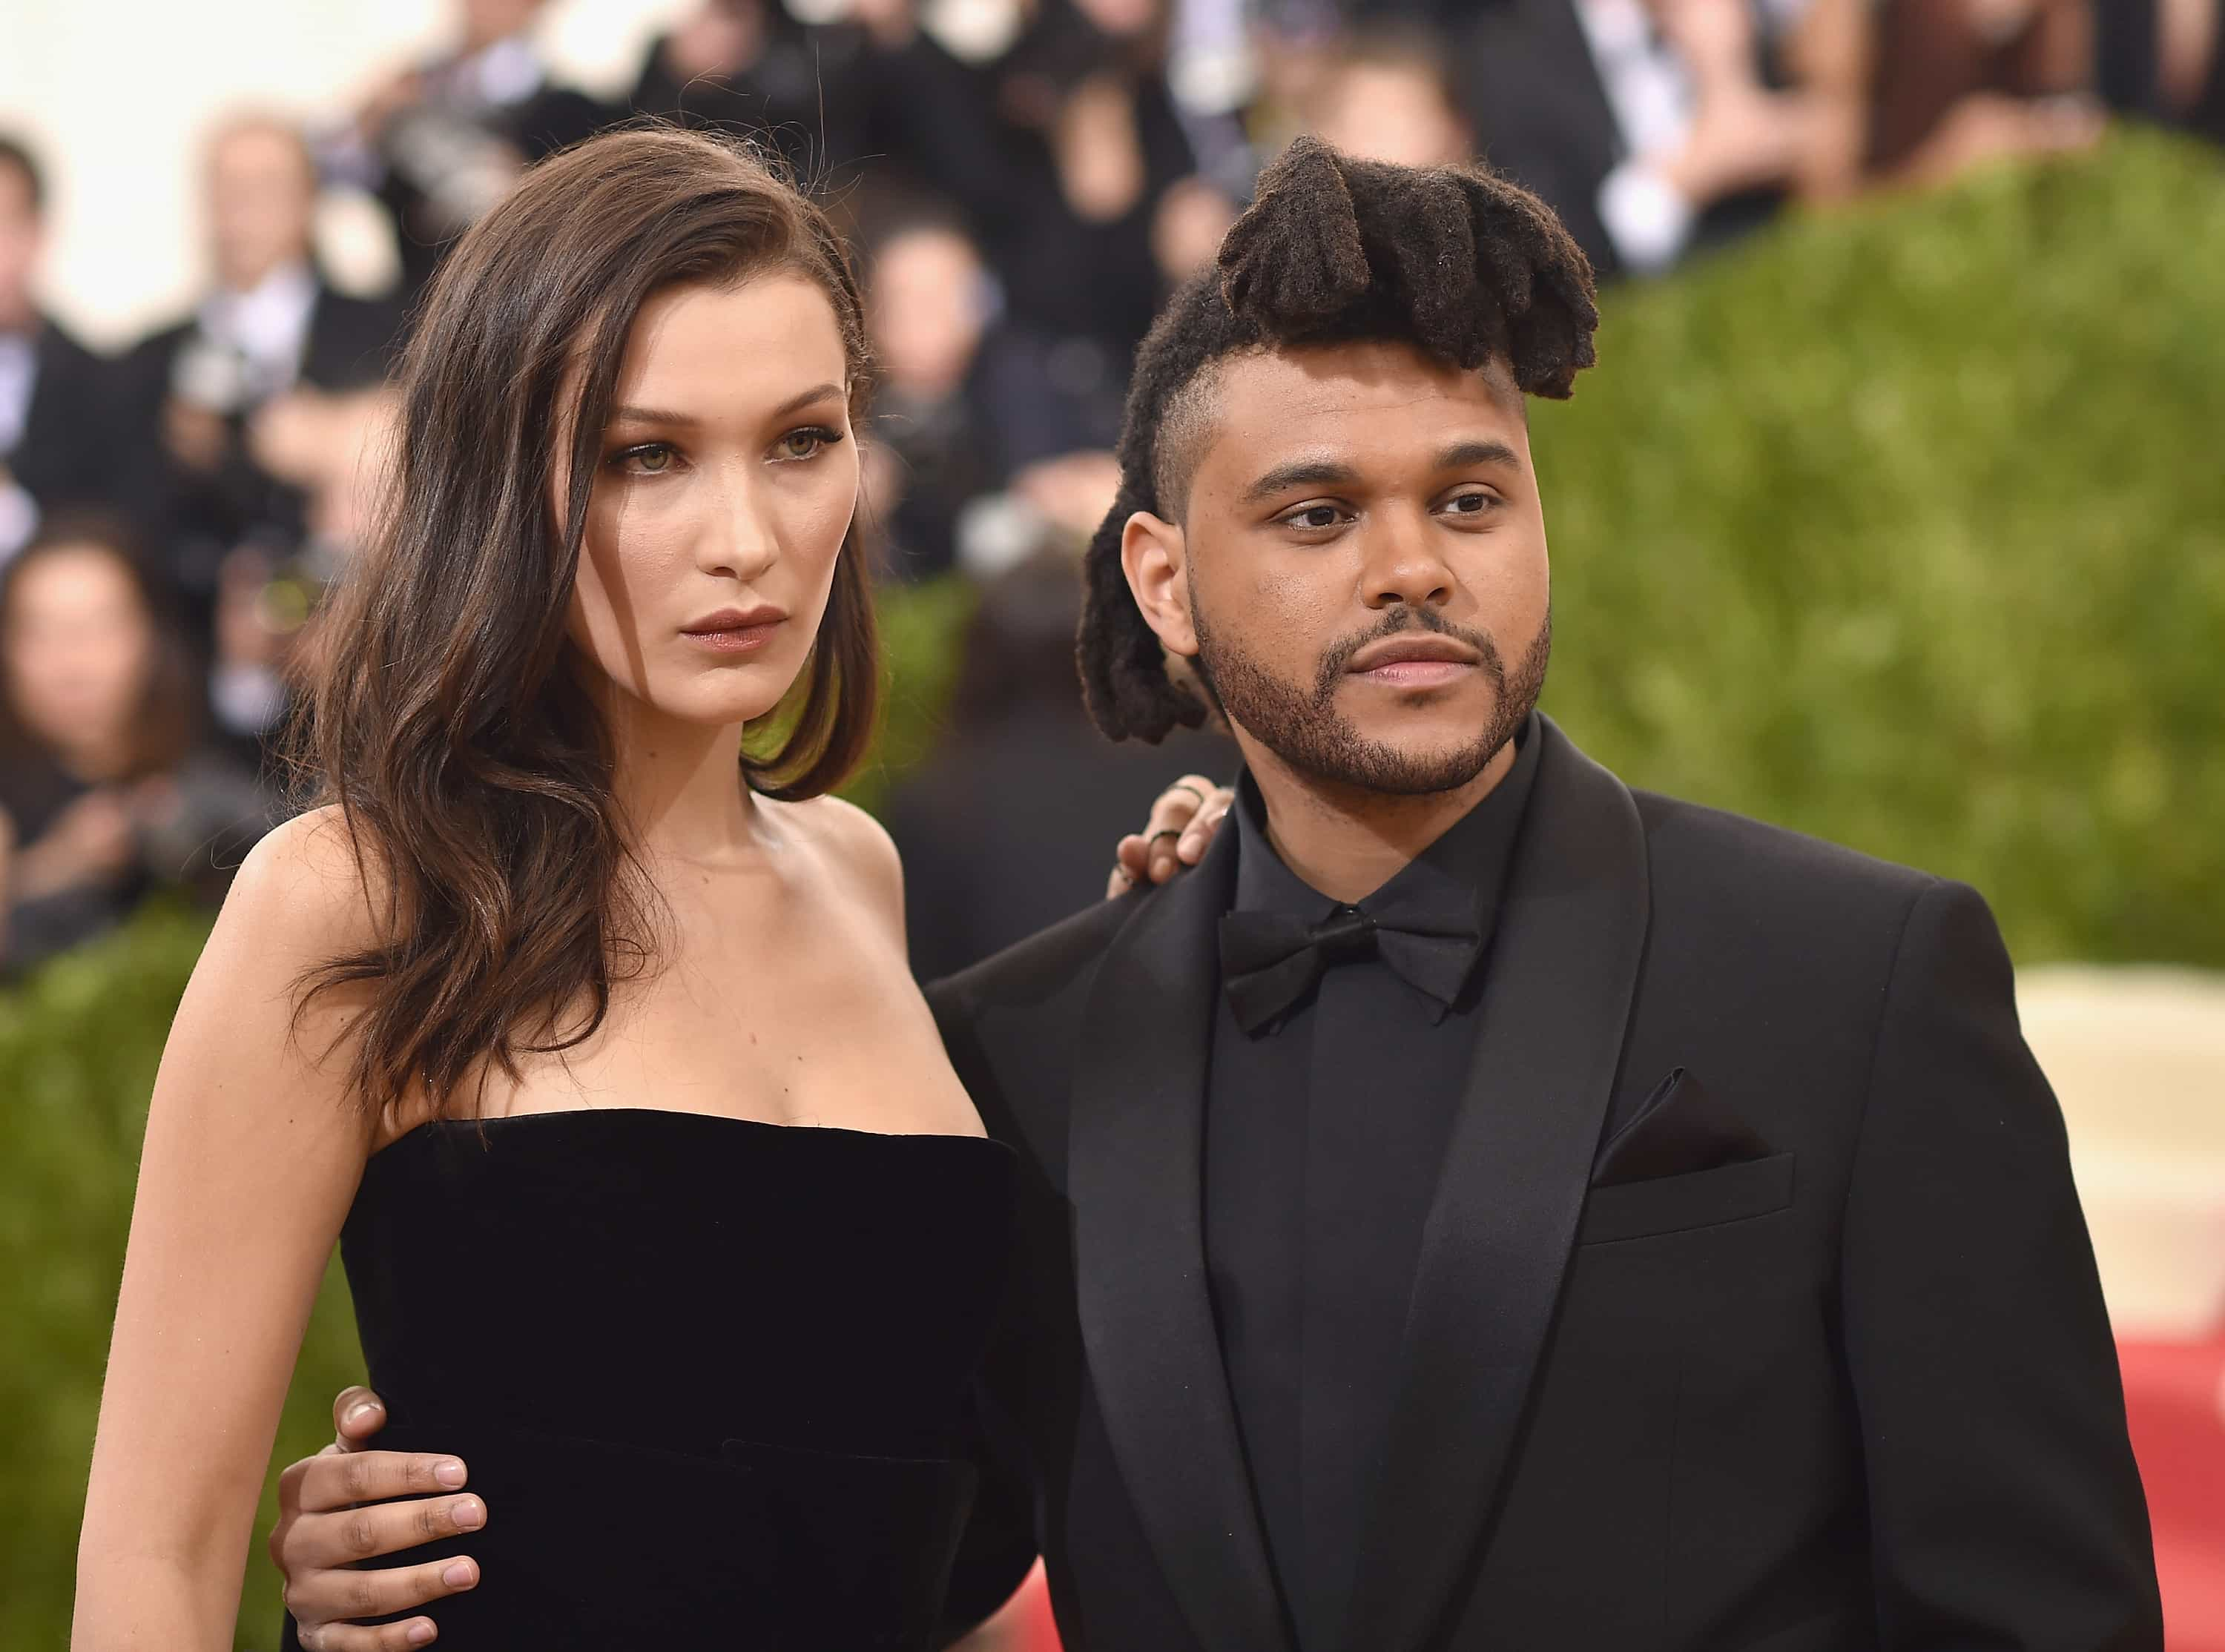 Finalmente! The Weeknd assume publicamente namoro com Bella Hadid